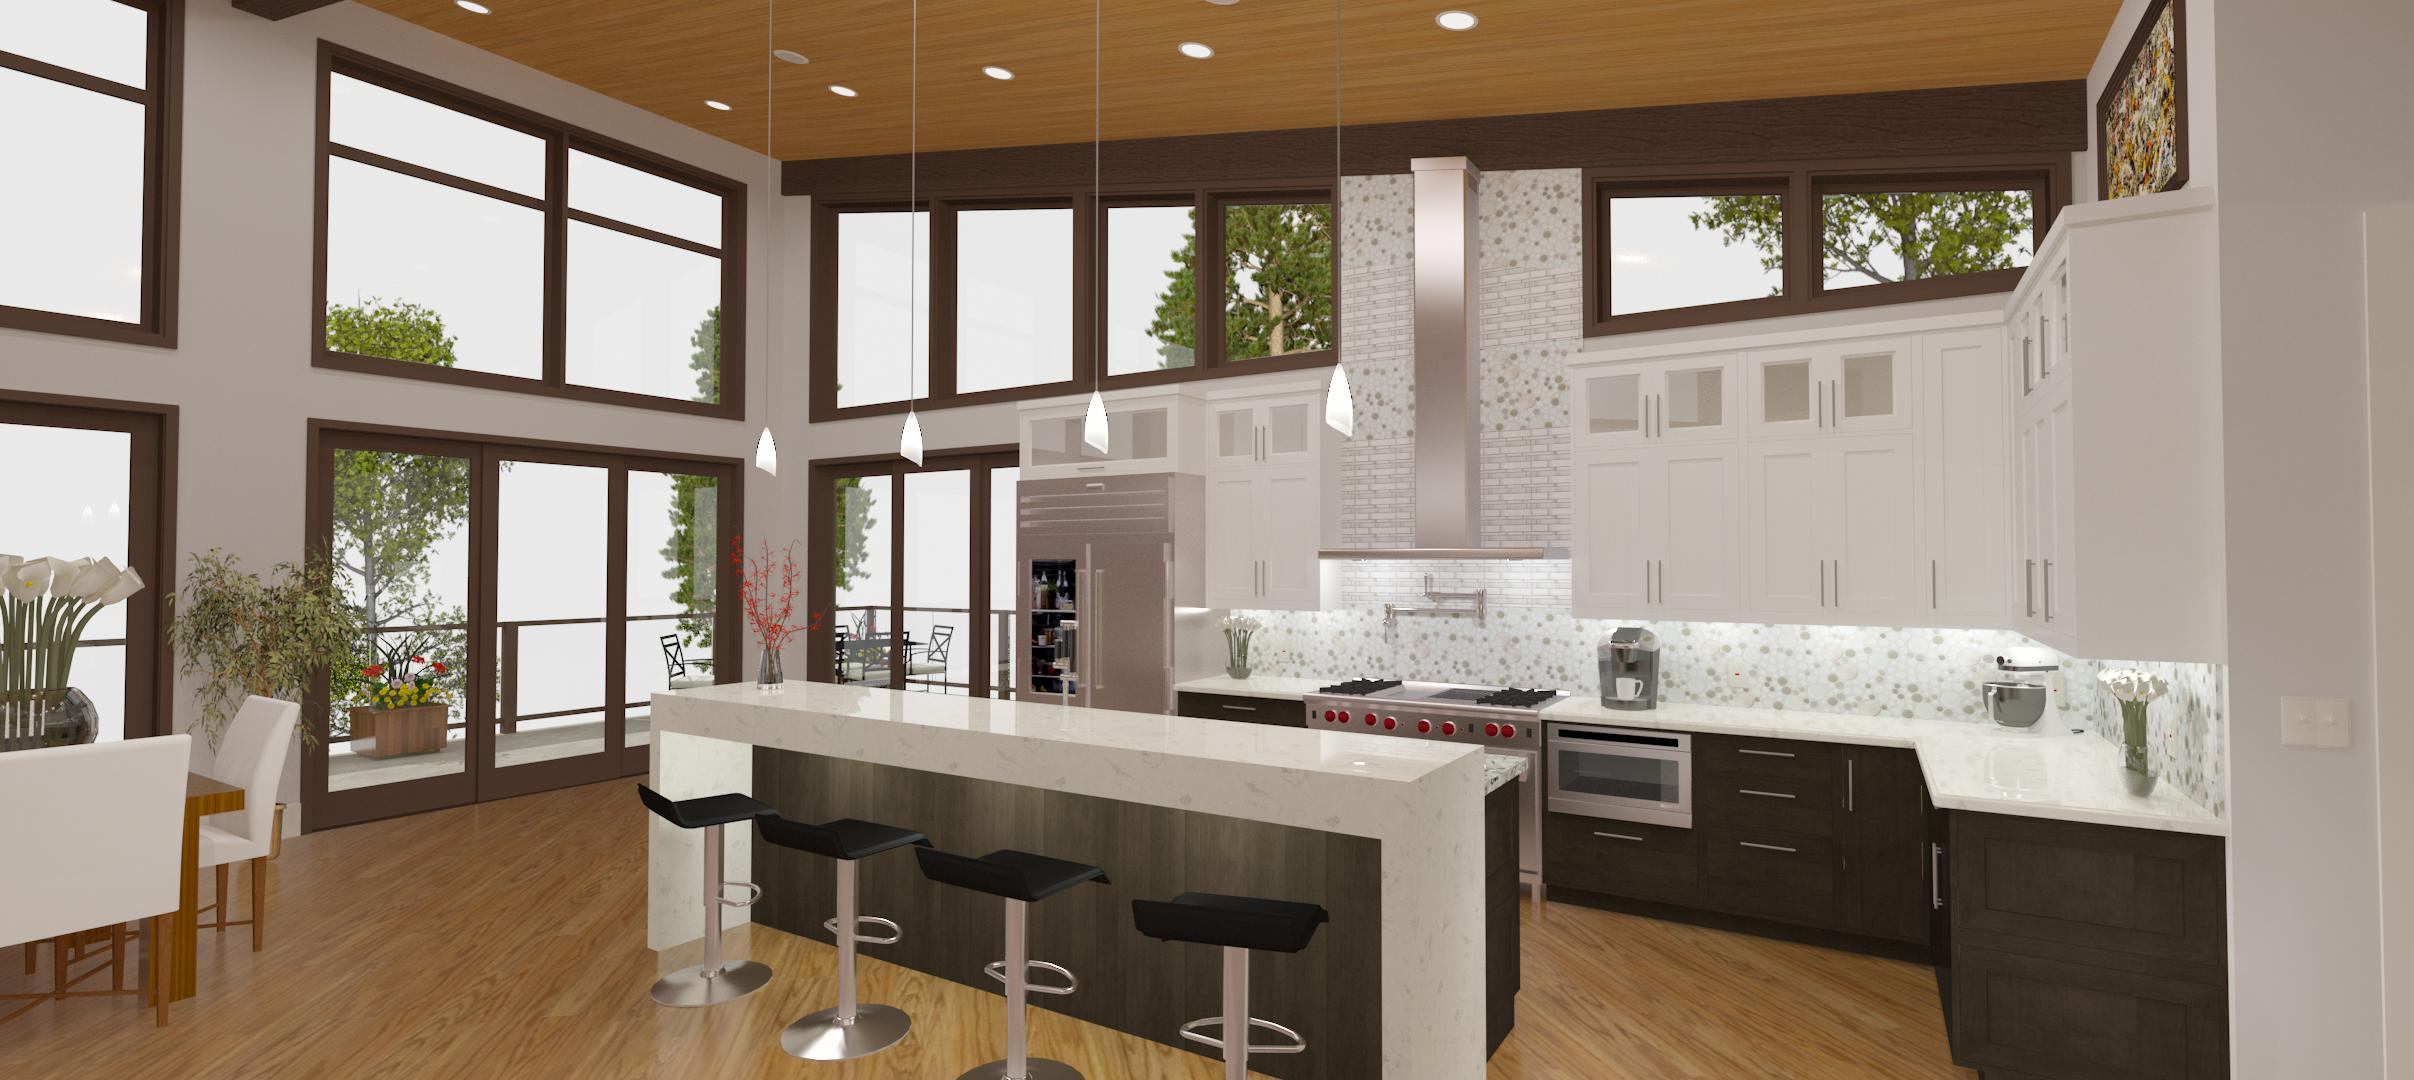 Superieur Kitchen Part 2, Waterfall Island U0026 Construction Drawings   Breckenridge  Home Design